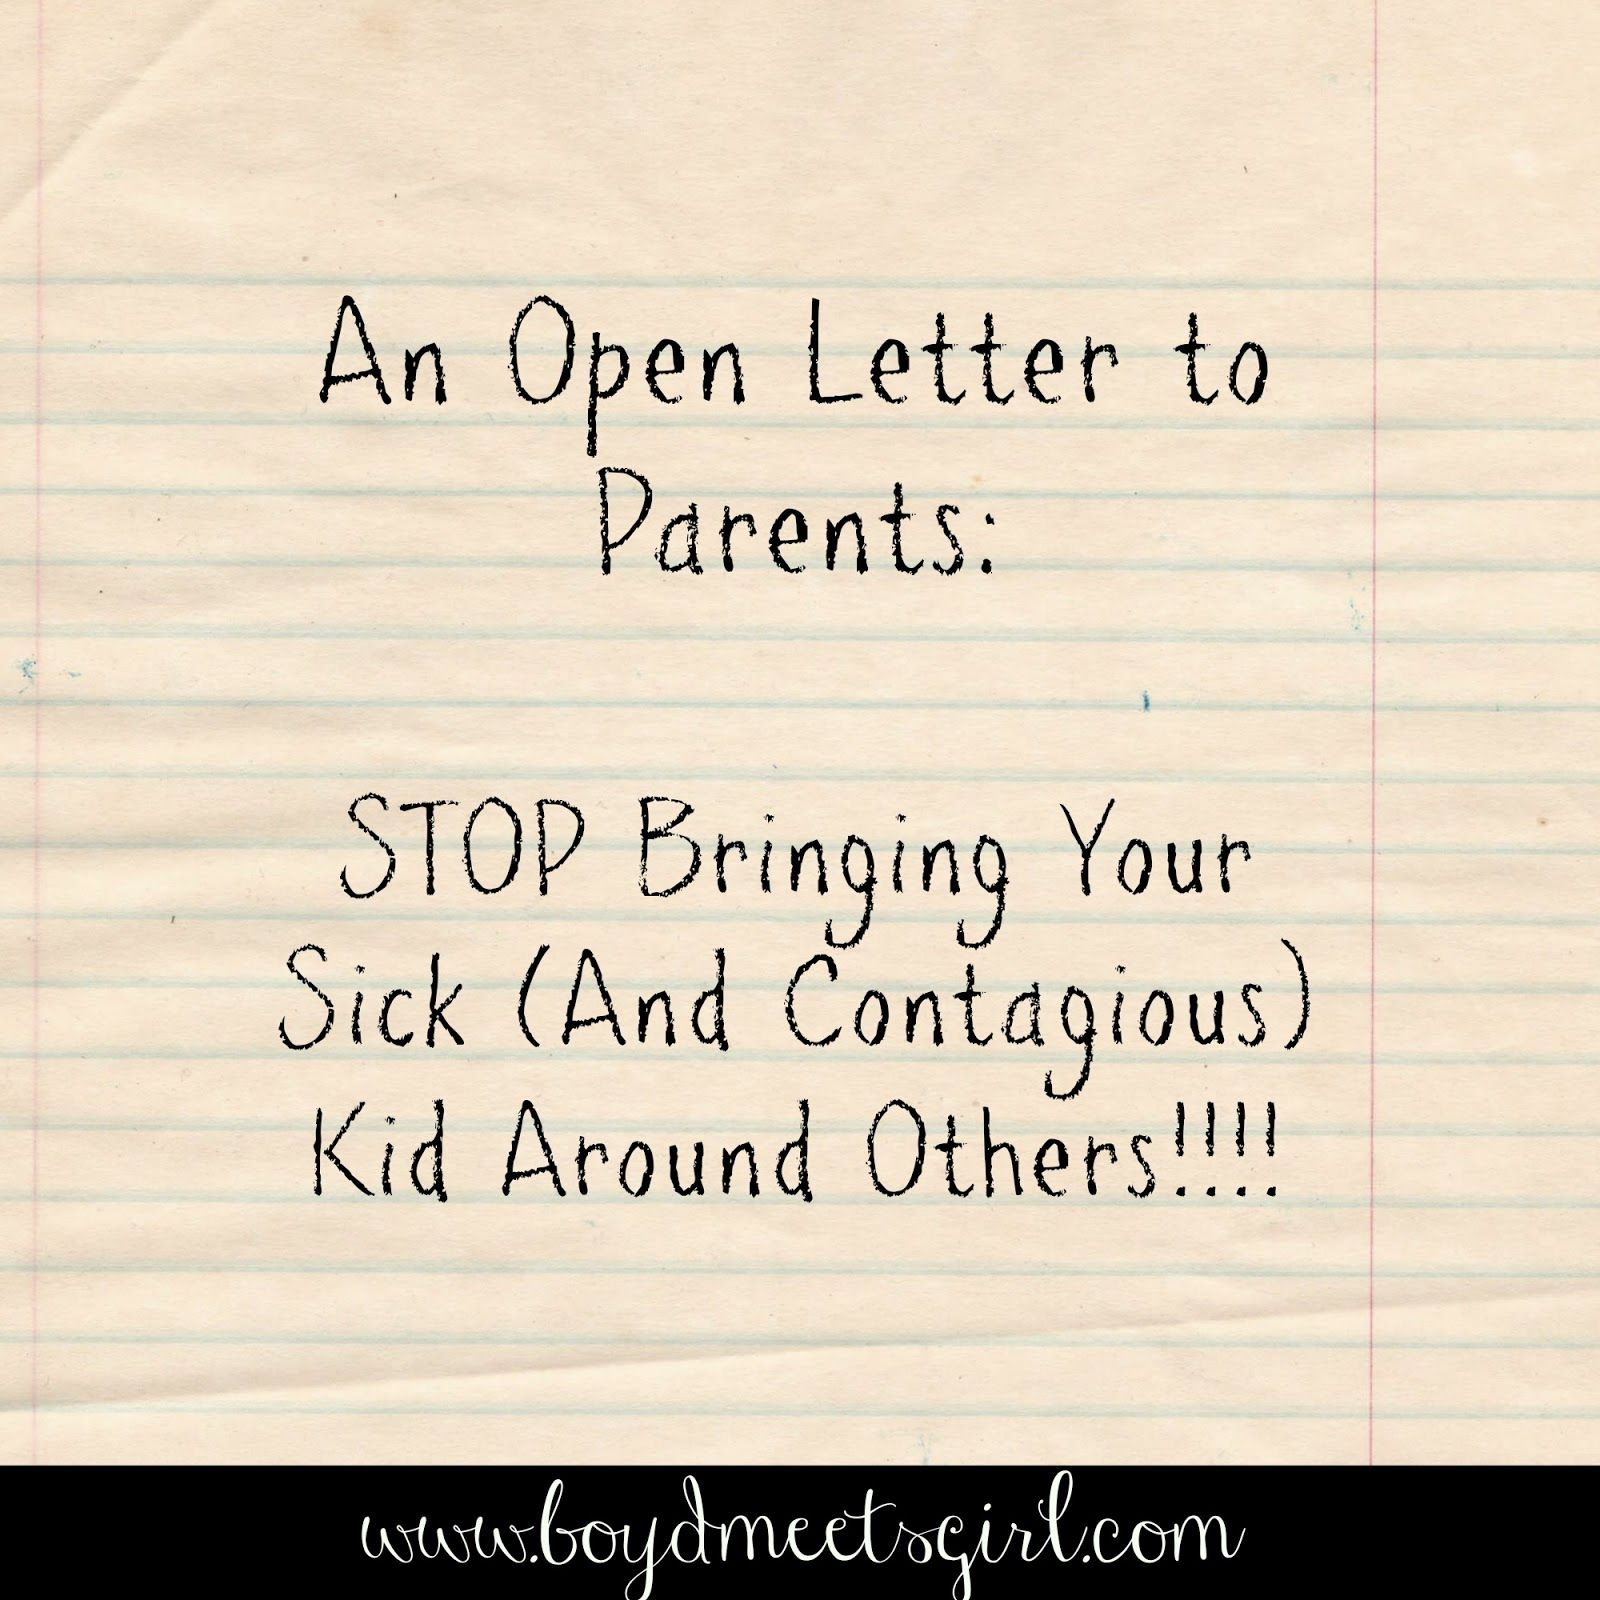 an open letter to parents of small children about bringing an open letter to parents of small children about bringing contagious sick kids around other kids